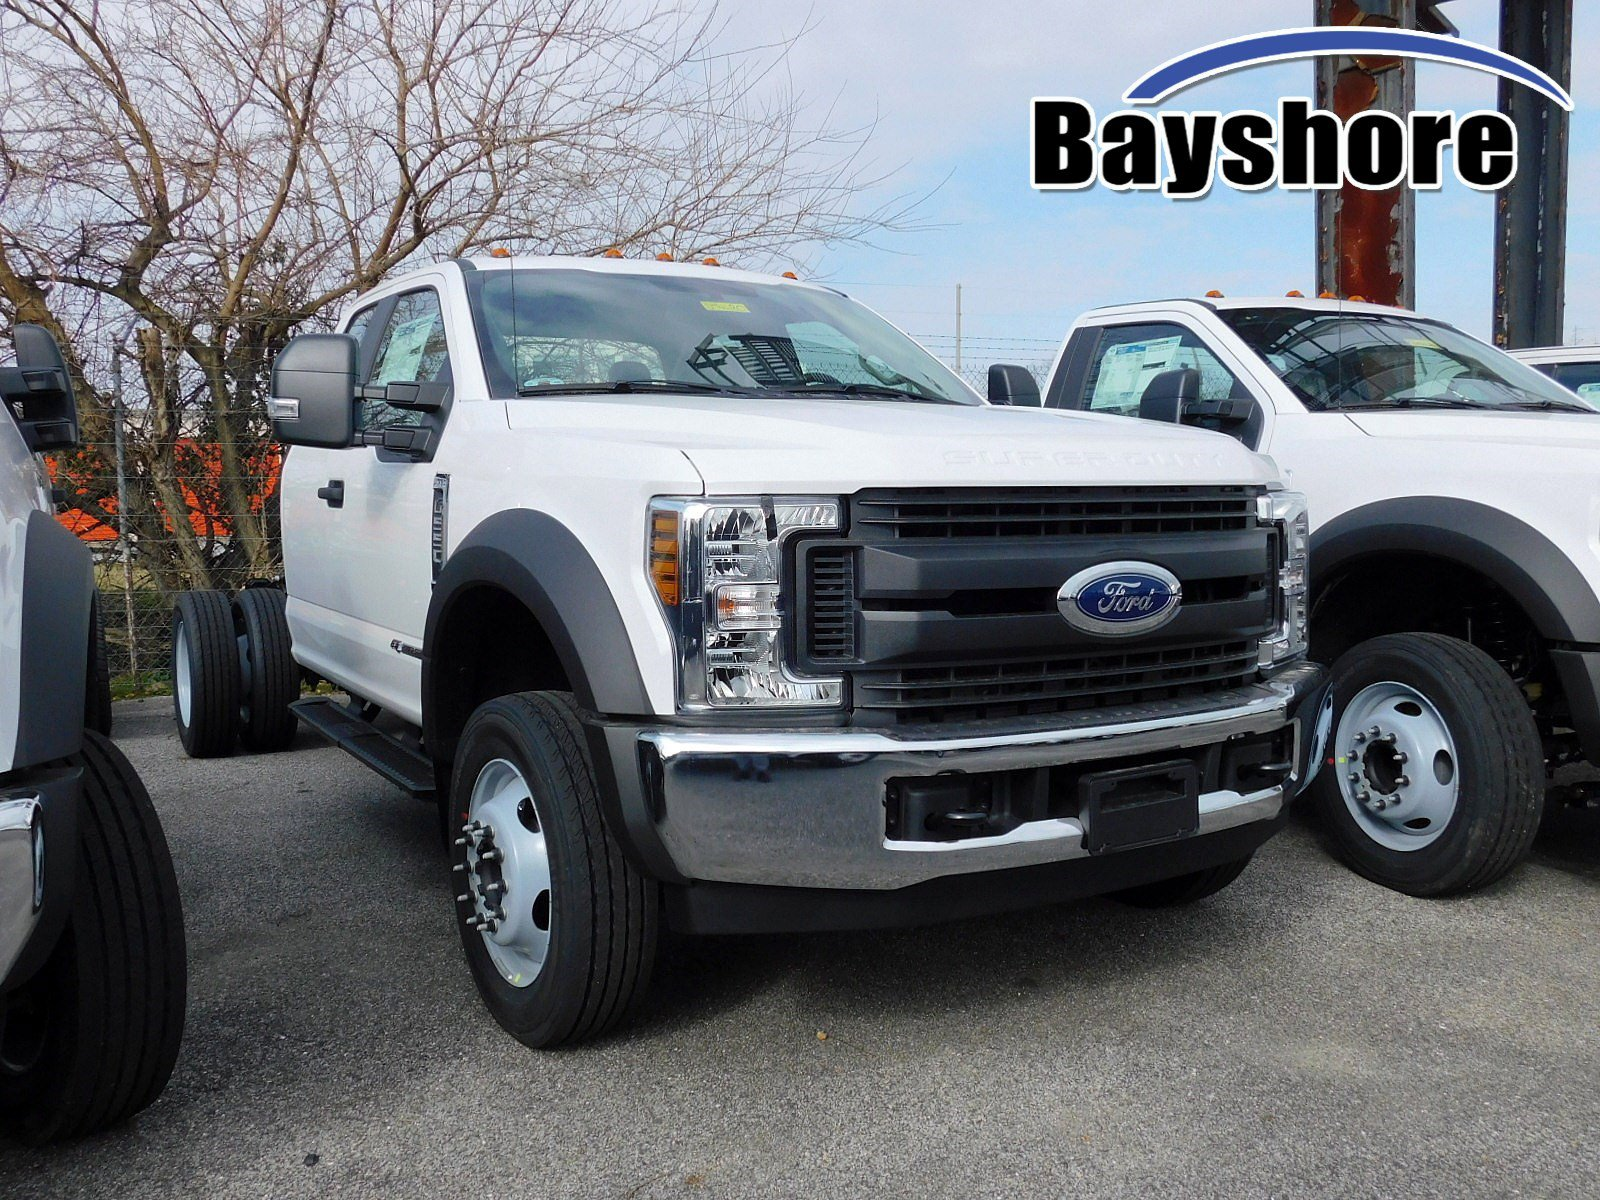 NEW 2019 FORD SUPER DUTY F-550 DRW TRUCK, CAB CHASSIS TRUCK #7010